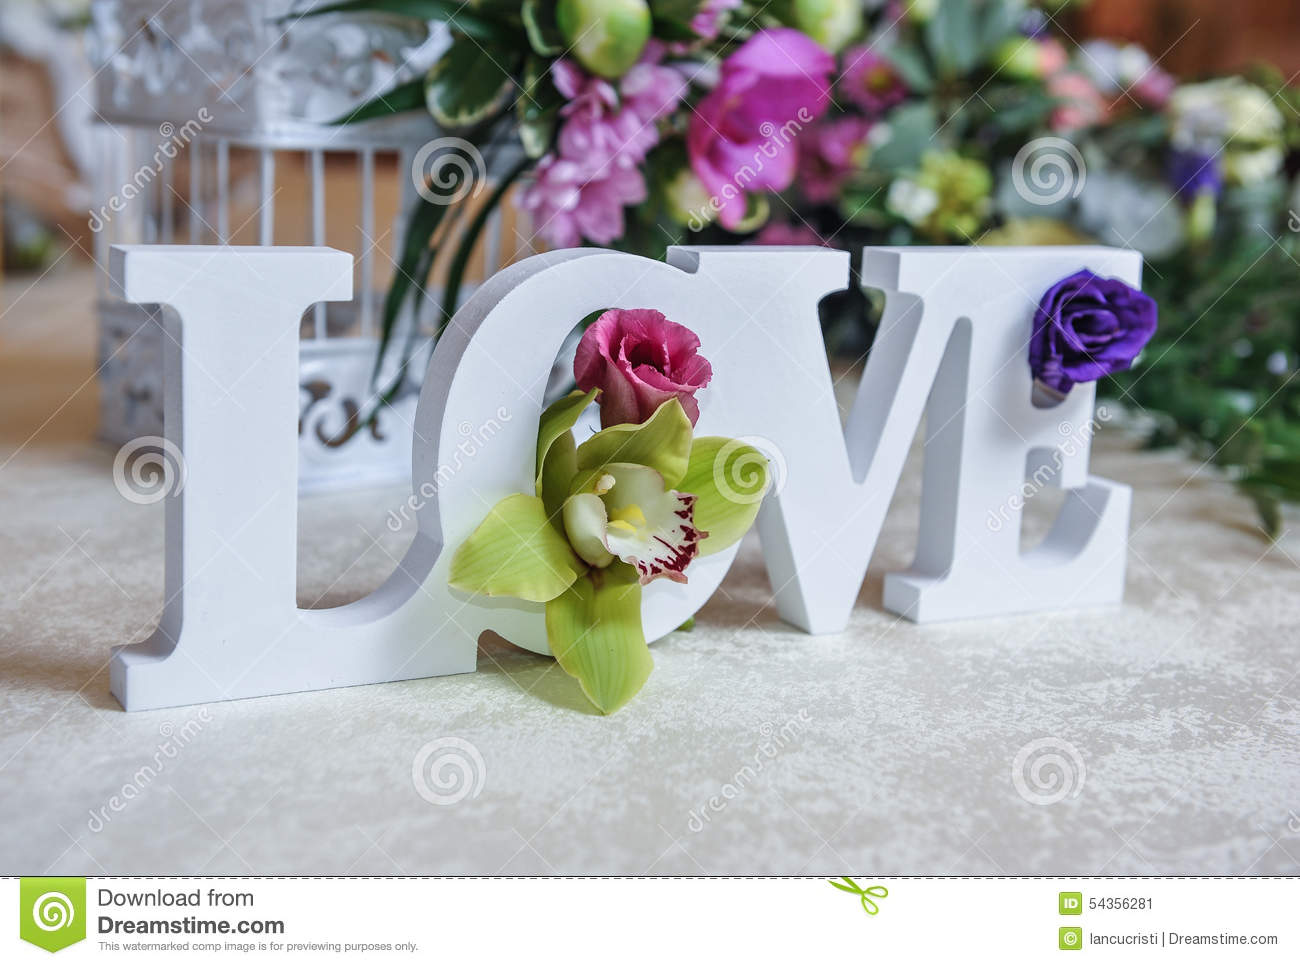 Wedding decor love letters and flowers on table fresh flowers and love decoration on festive for Decoration image